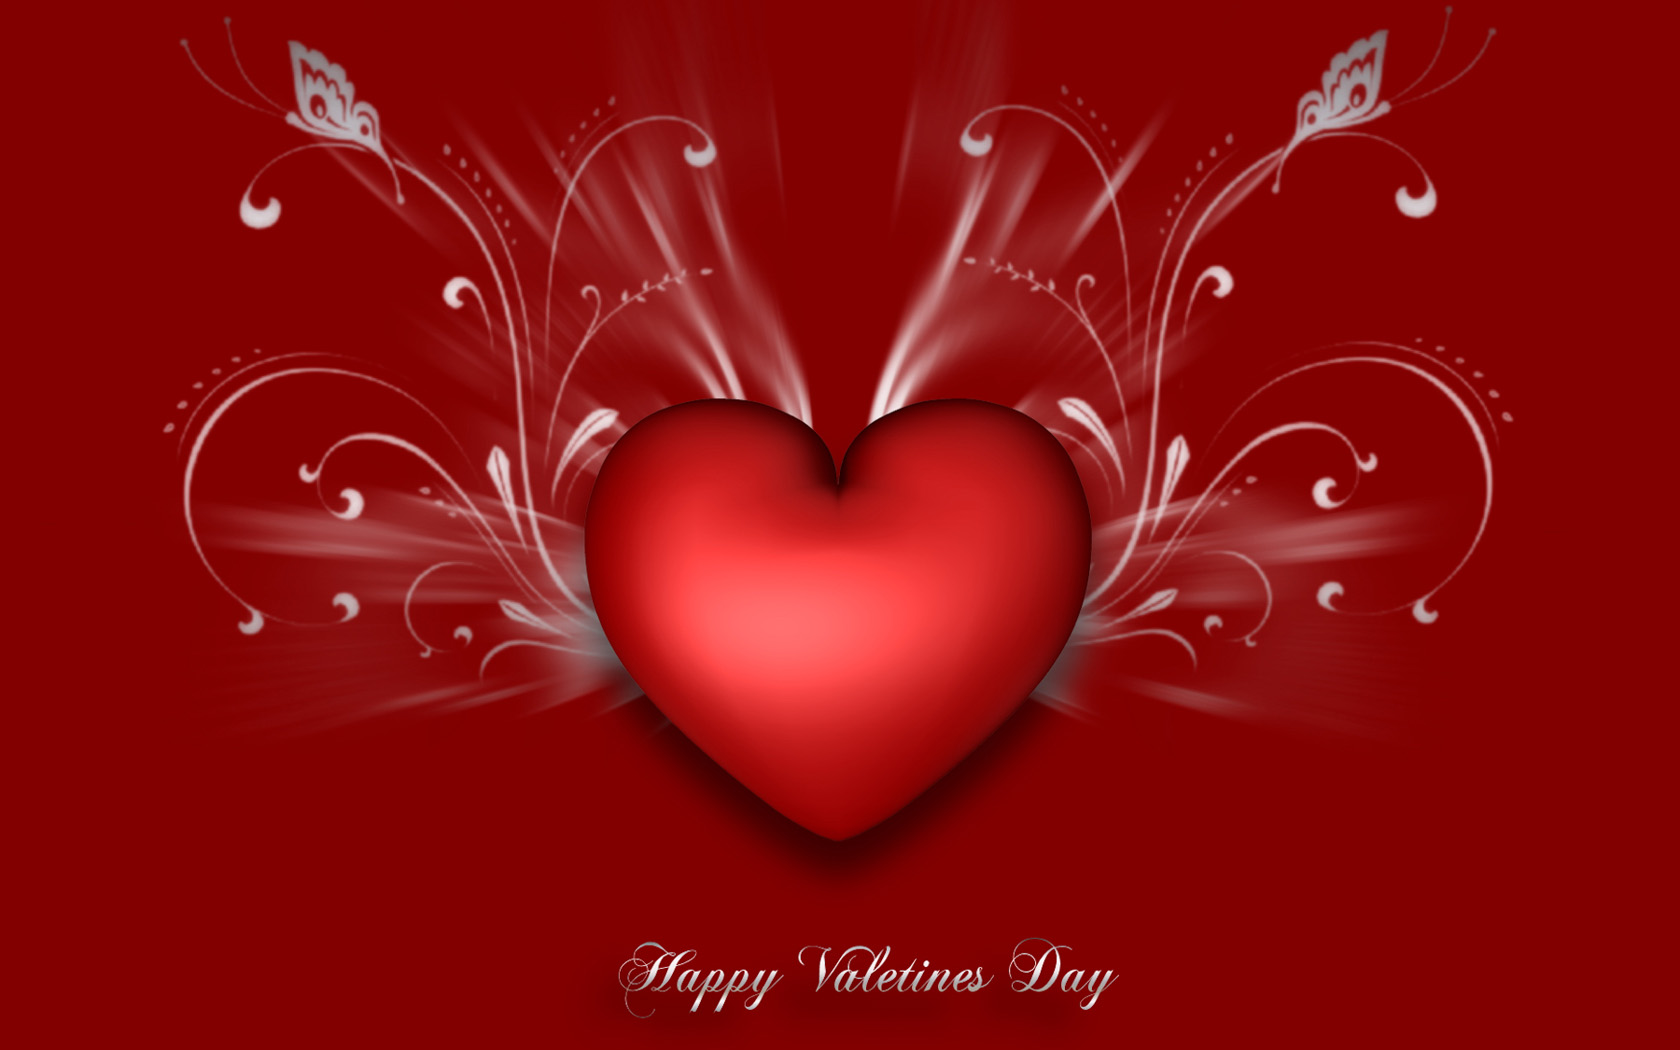 Happy Valentines Heart Picture for fb Share